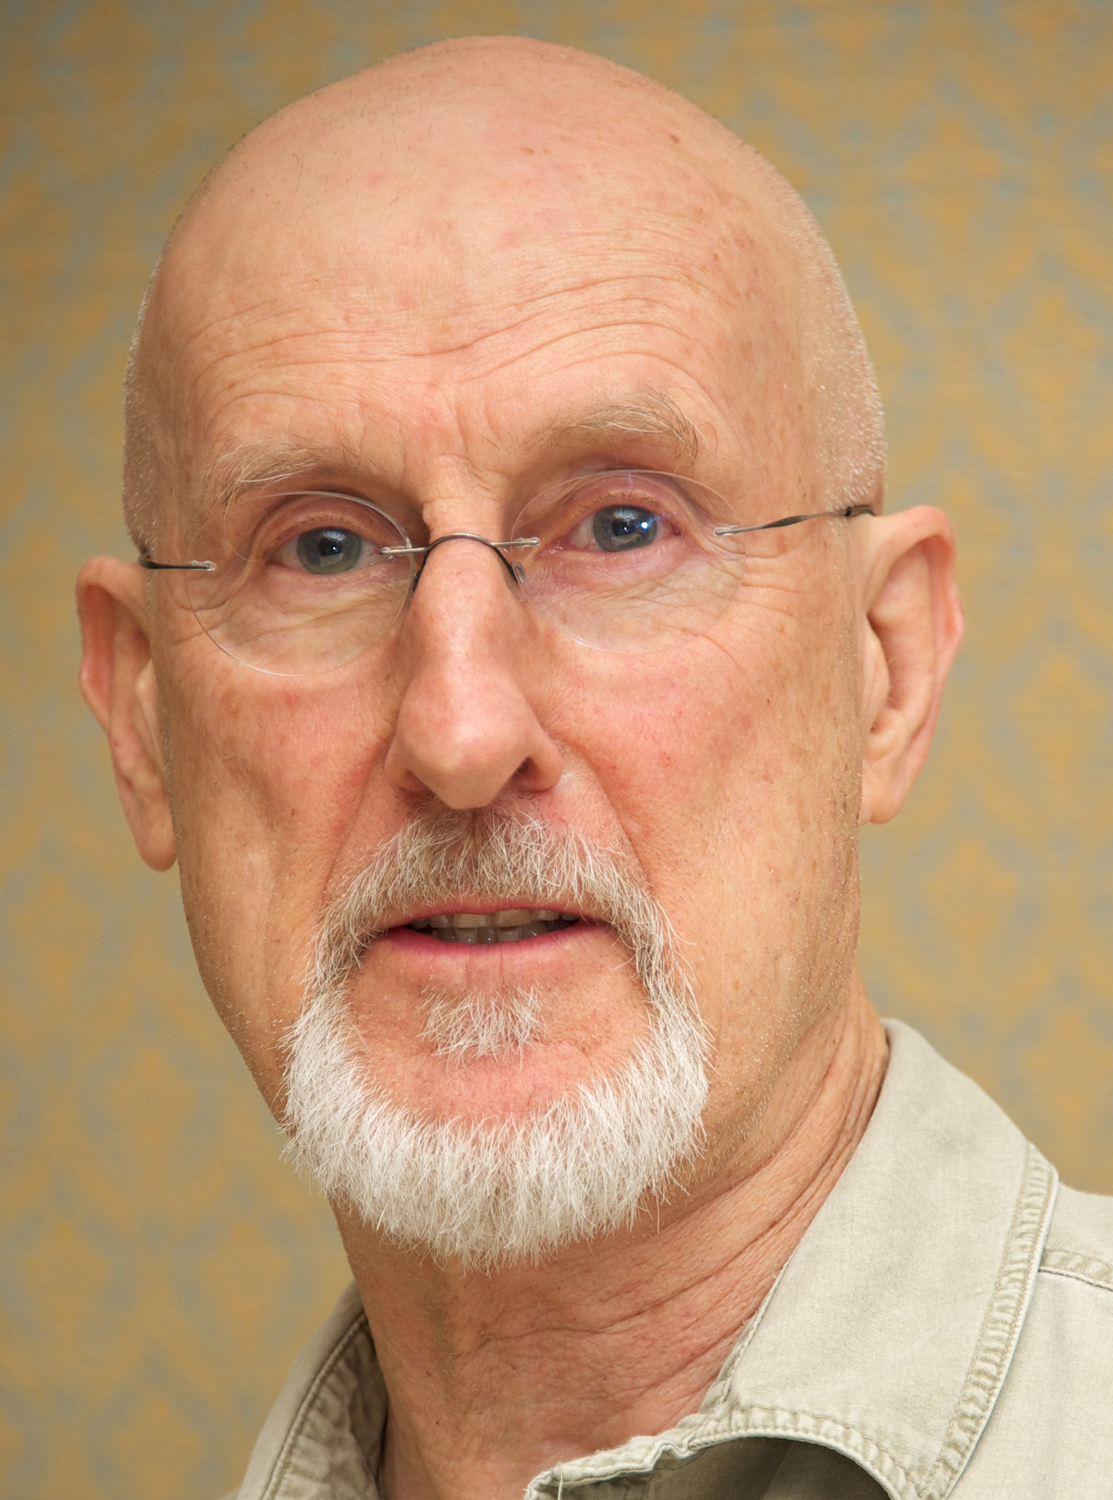 James Oscar Lee : James cromwell arrested for protesting alleged cat abuse